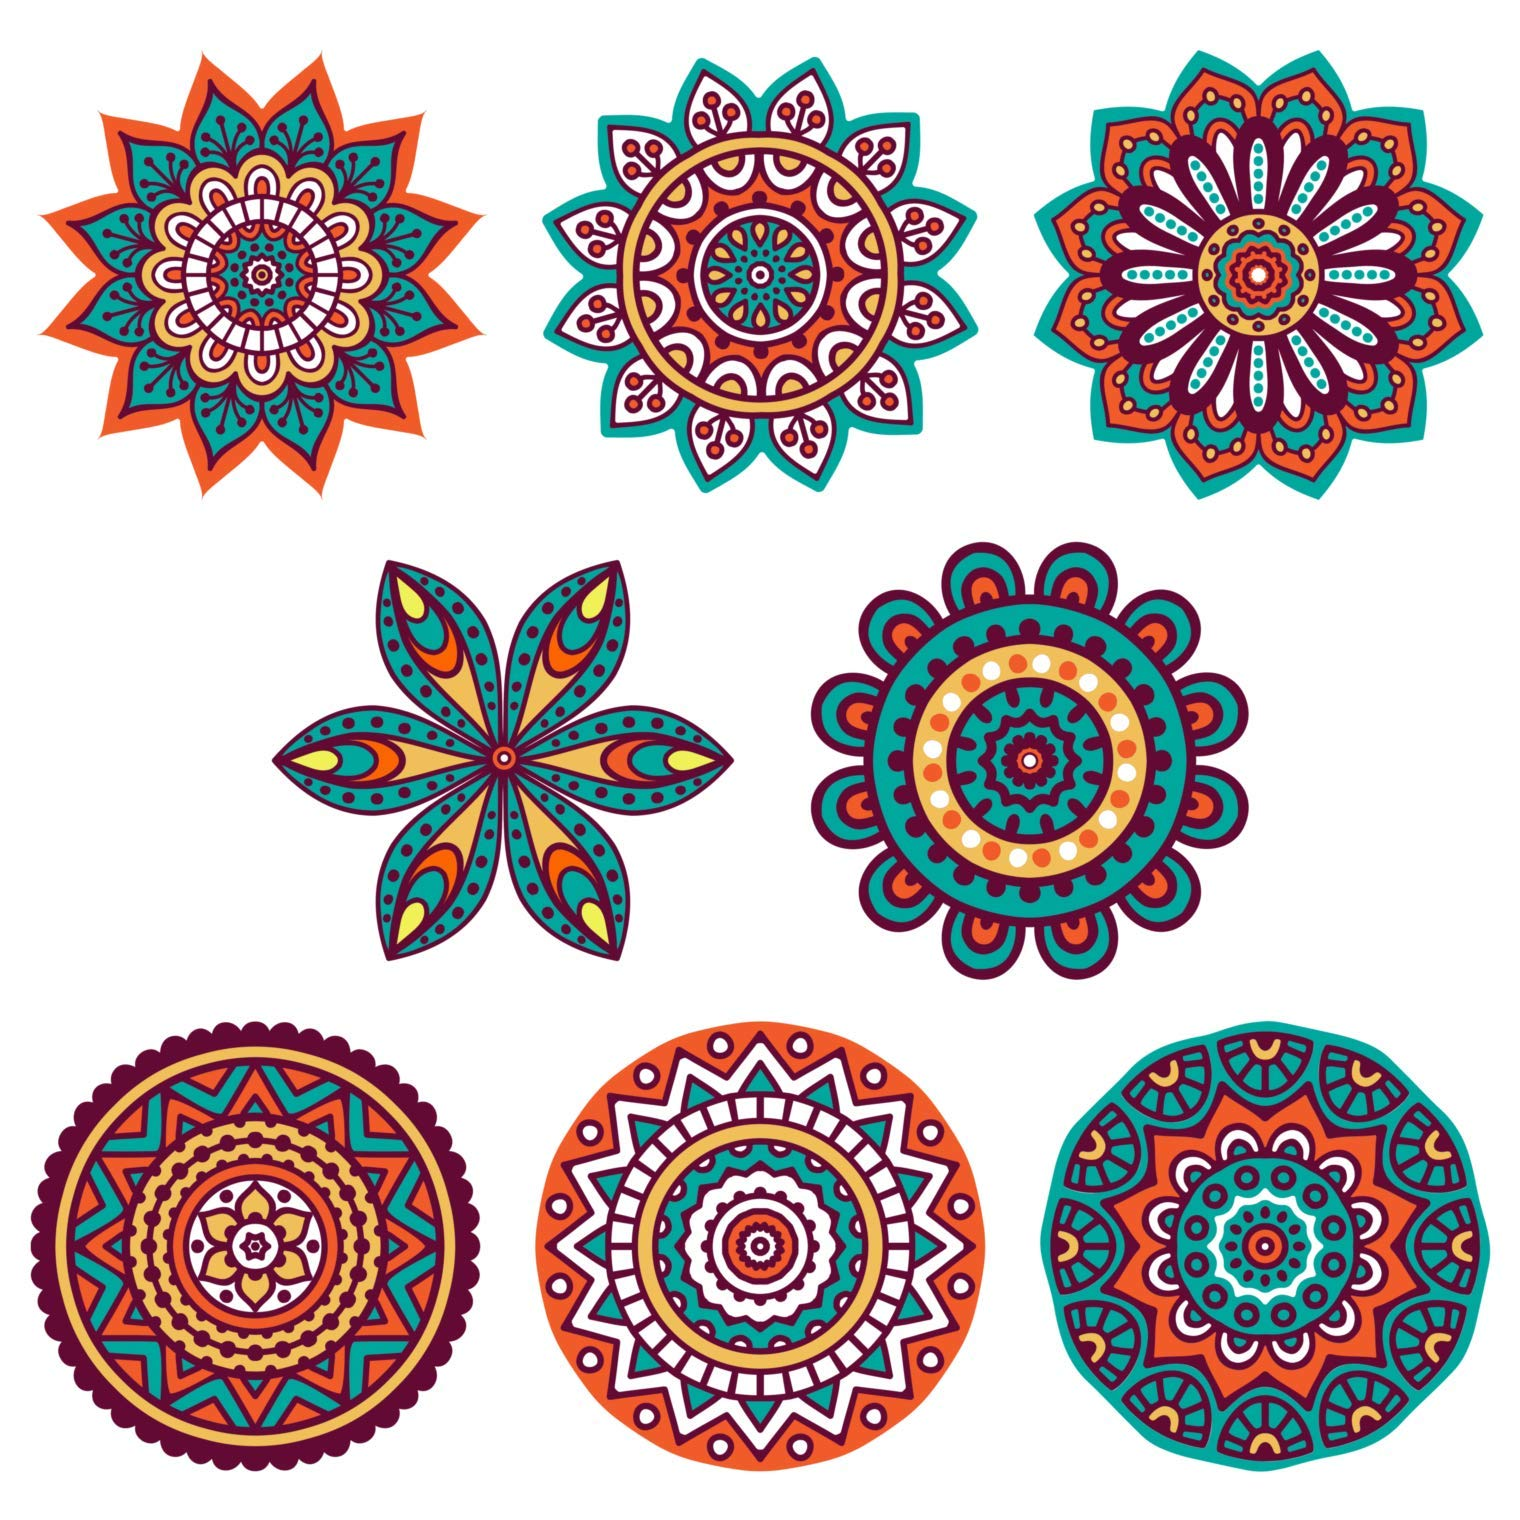 "Boho Decor :: Mandala Sun Catchers Window Clings (Set of 8) :: Stained Glass Window Art Decal/Cling :: Suncatchers for Windows Decoration :: Hippie Decor :: (Size :: 5.75"")"